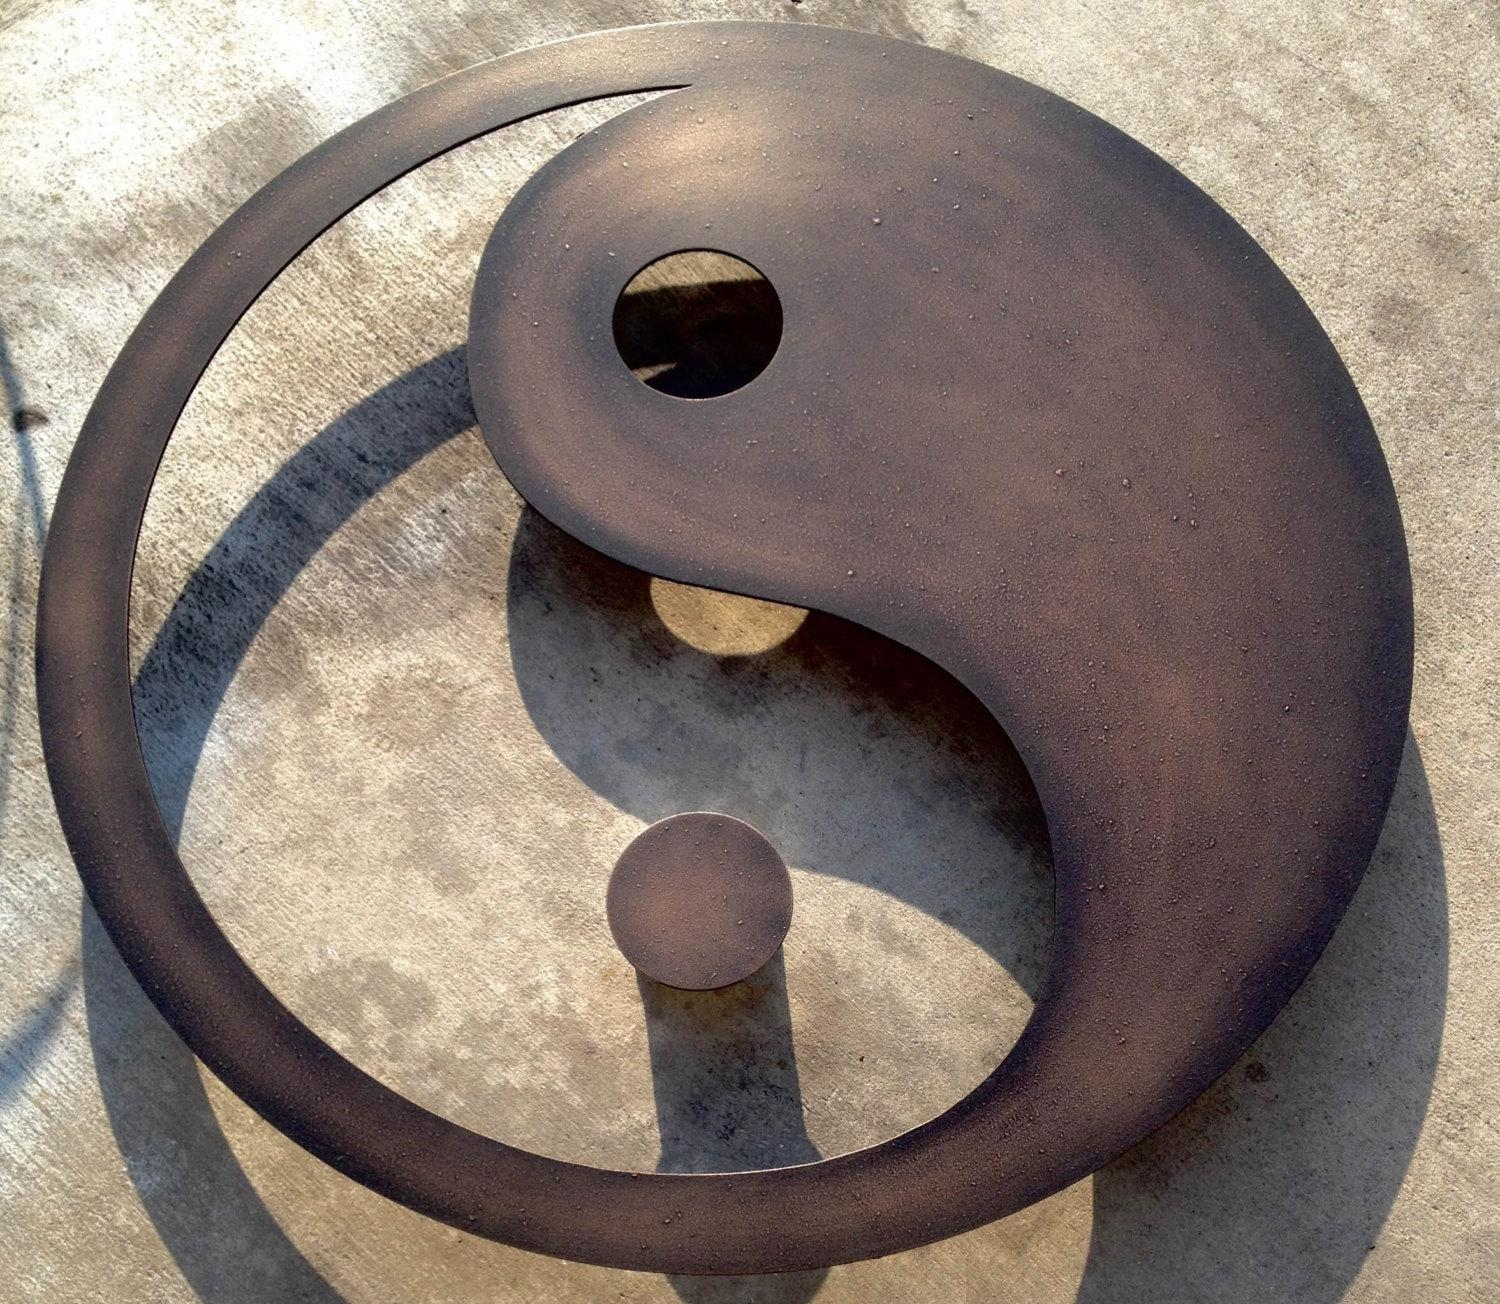 Metal Wall Art For The Home Or Officeinspiremetals On Etsy Throughout Yin Yang Wall Art (Image 6 of 20)